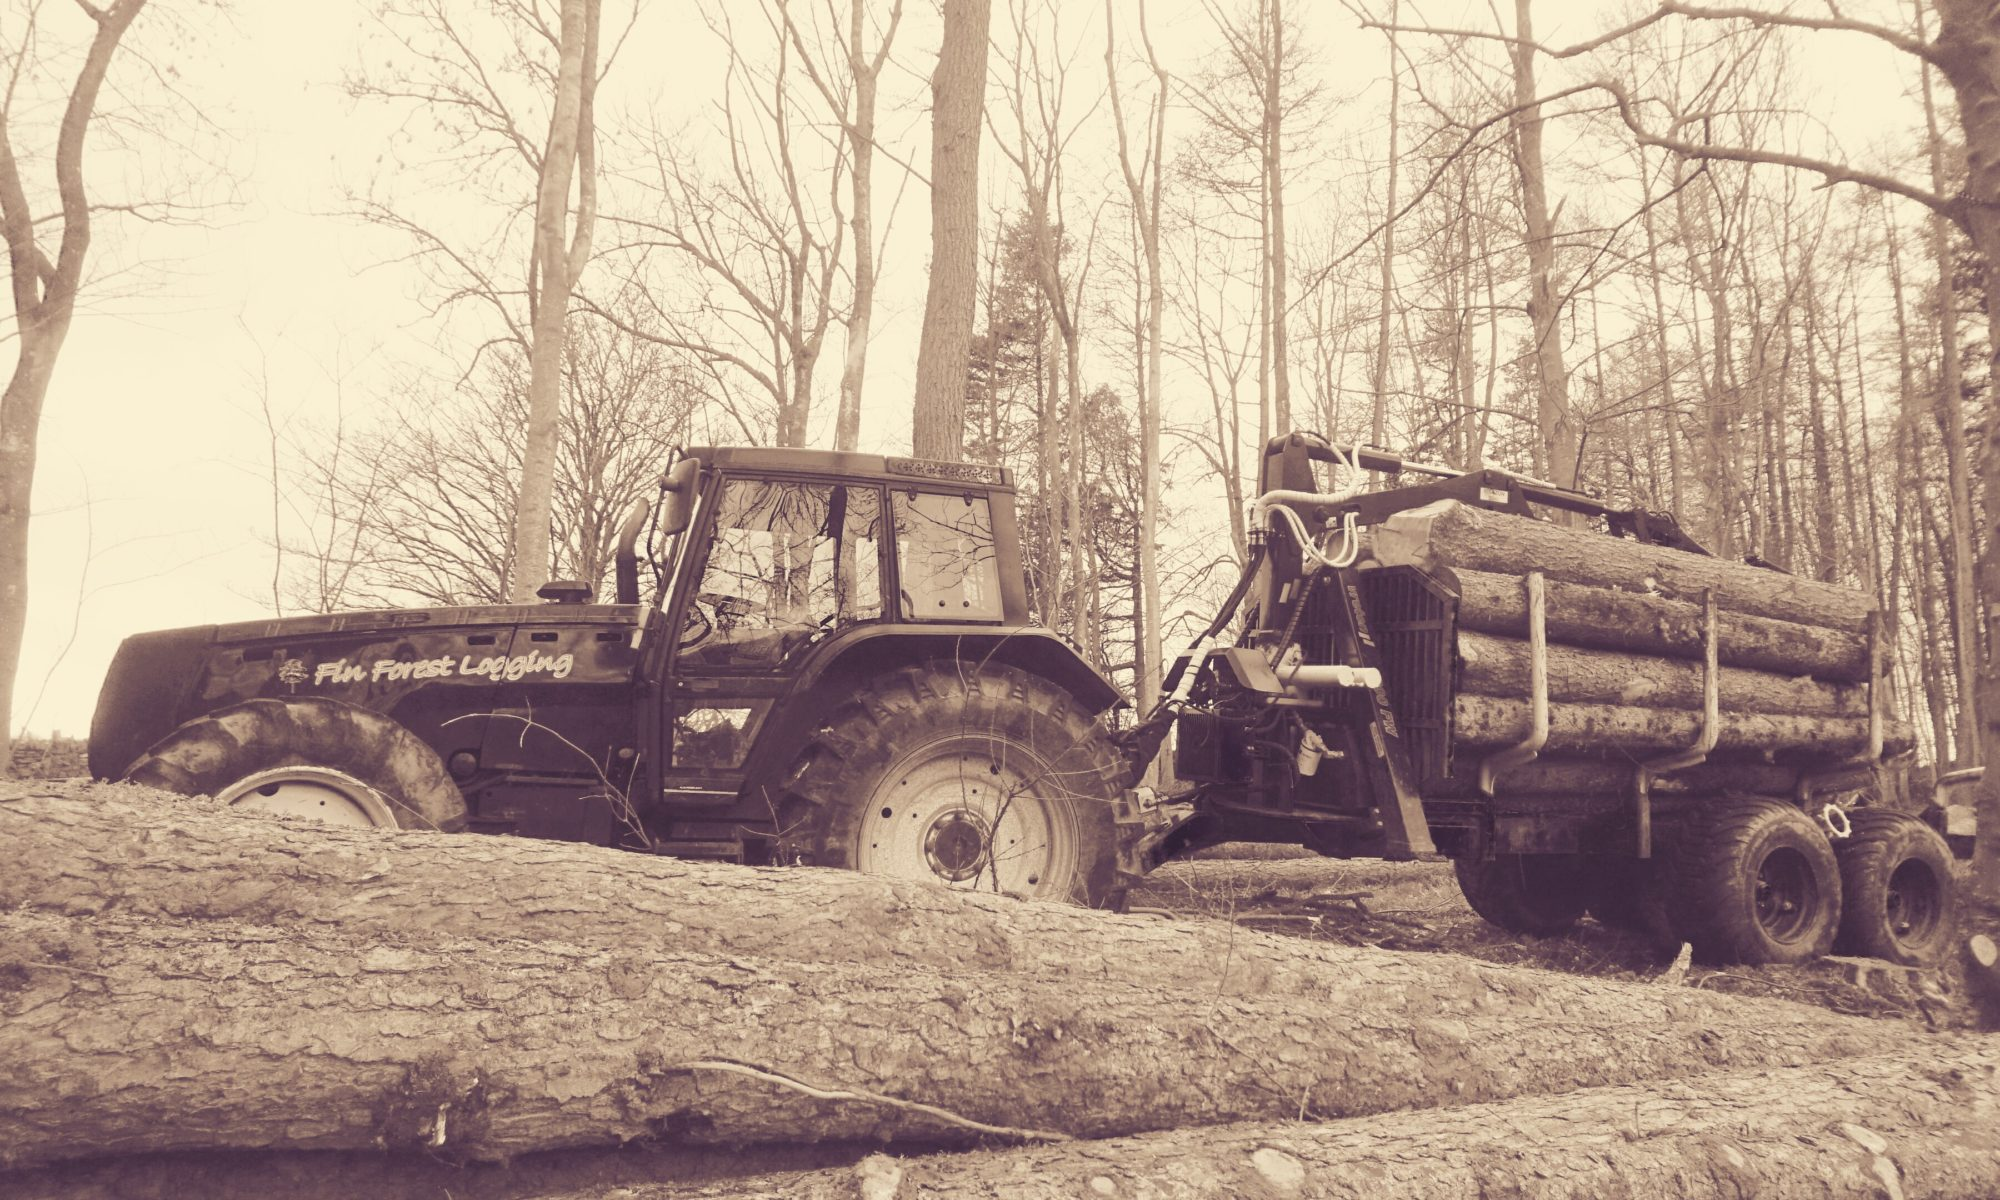 Fin Forest Logging